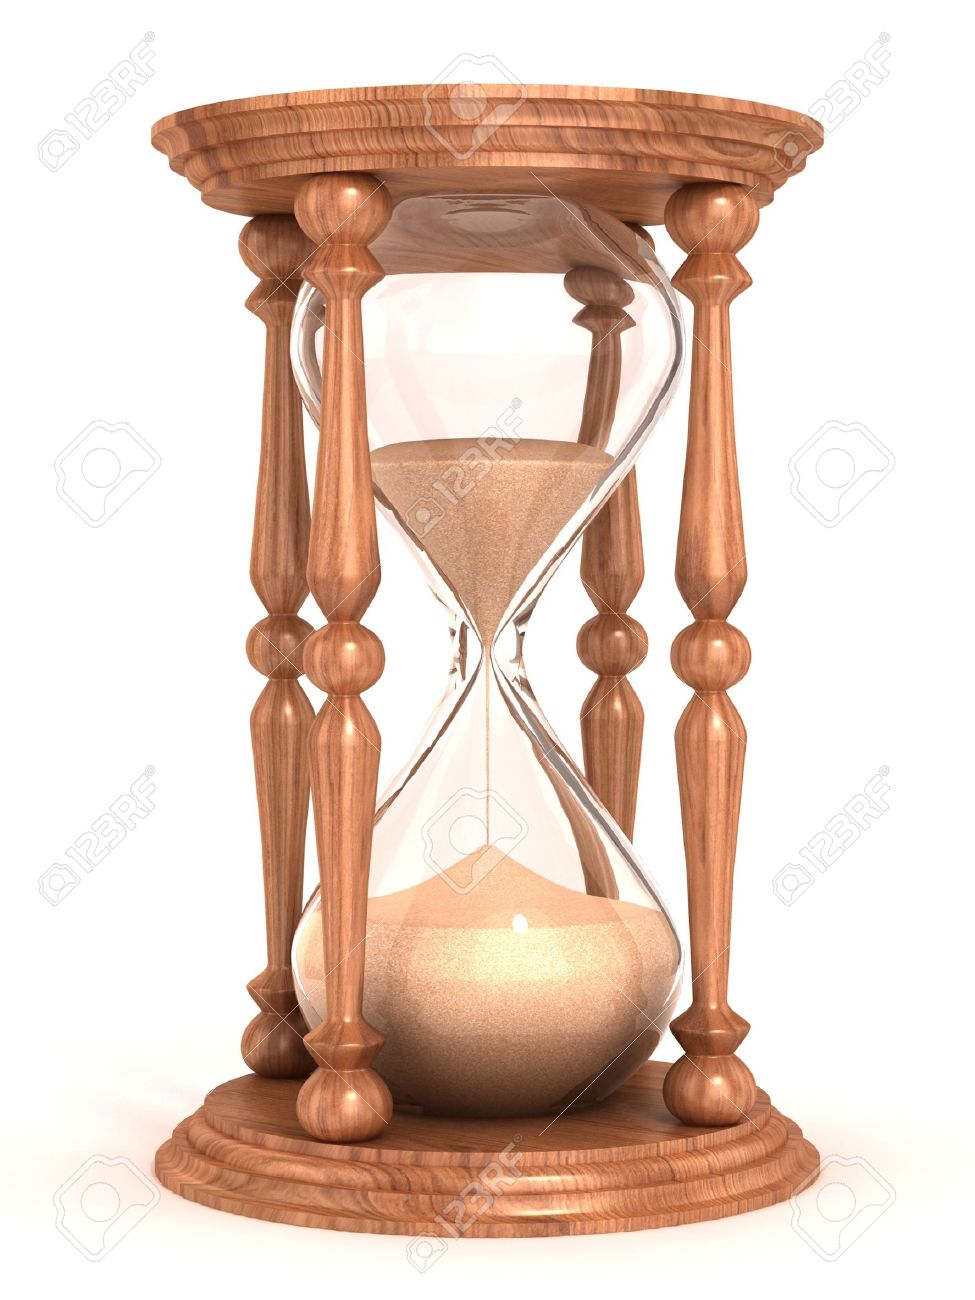 hourglass, sandglass, sand timer, sand clock isolated on the white background 3d illustration Stock Photo - 12557639